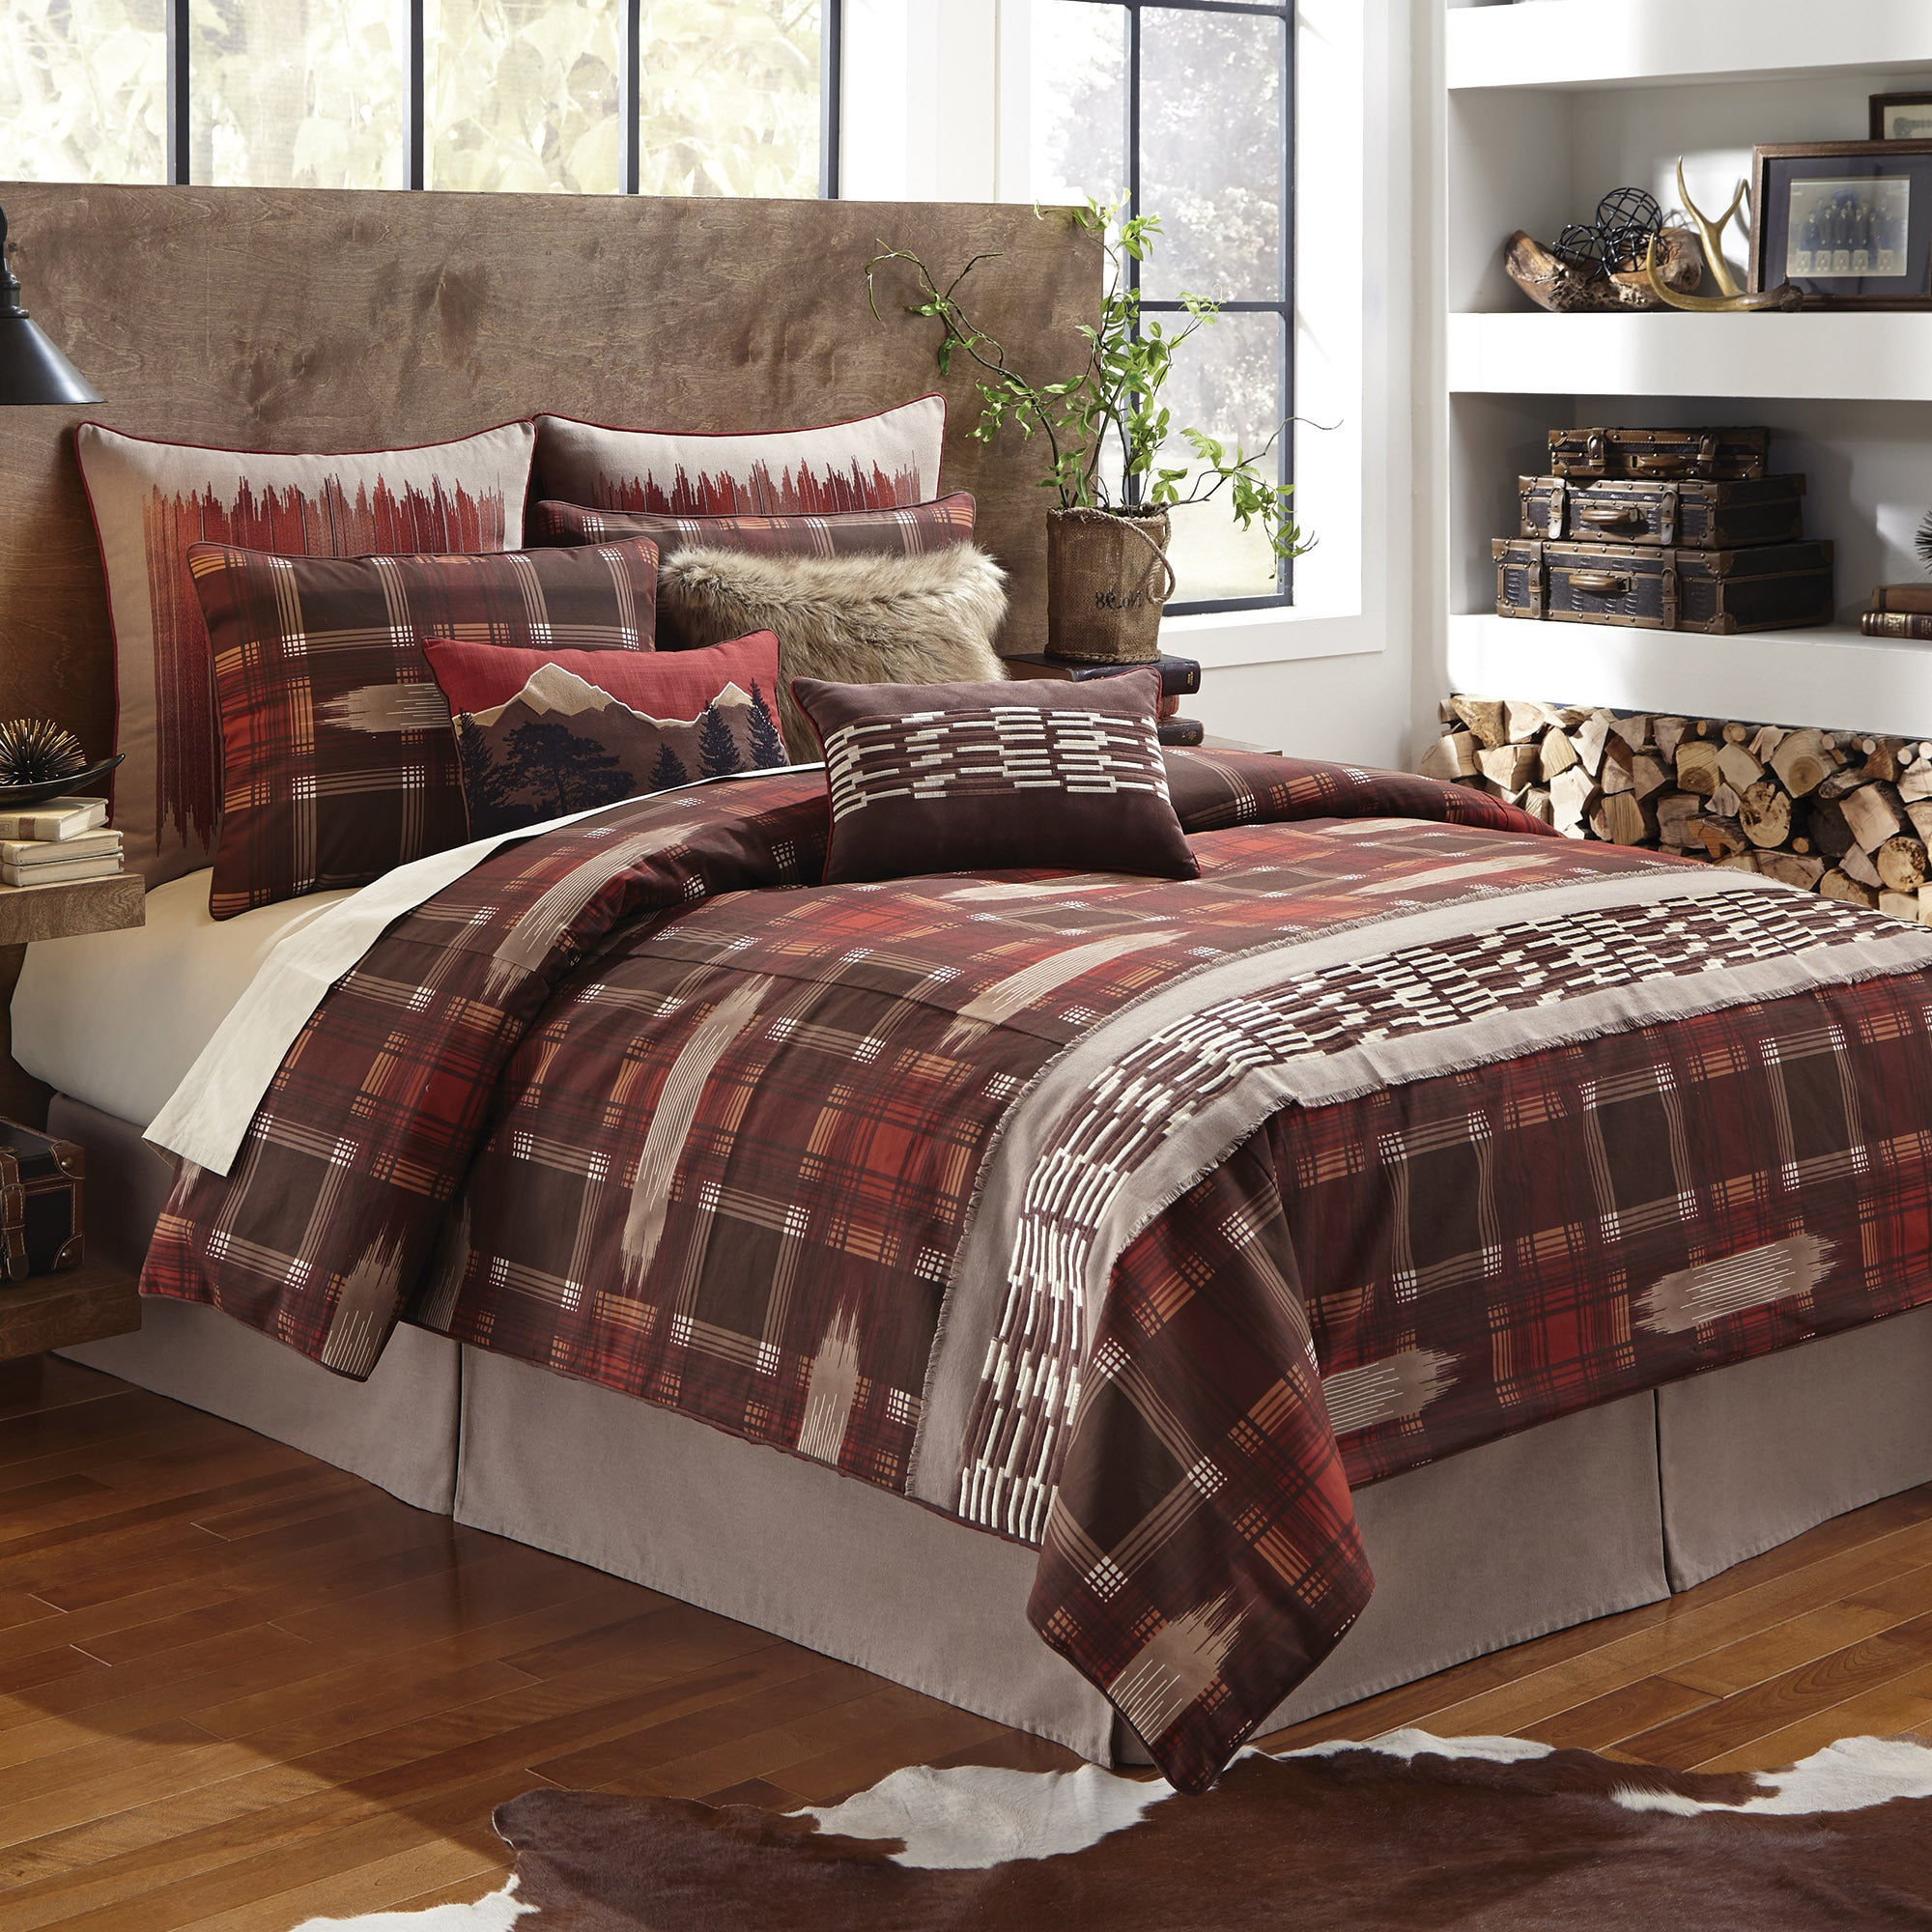 Croscill Wagner Print Lodge Embroidered 4 Piece Comforter Set Overstock 10240529